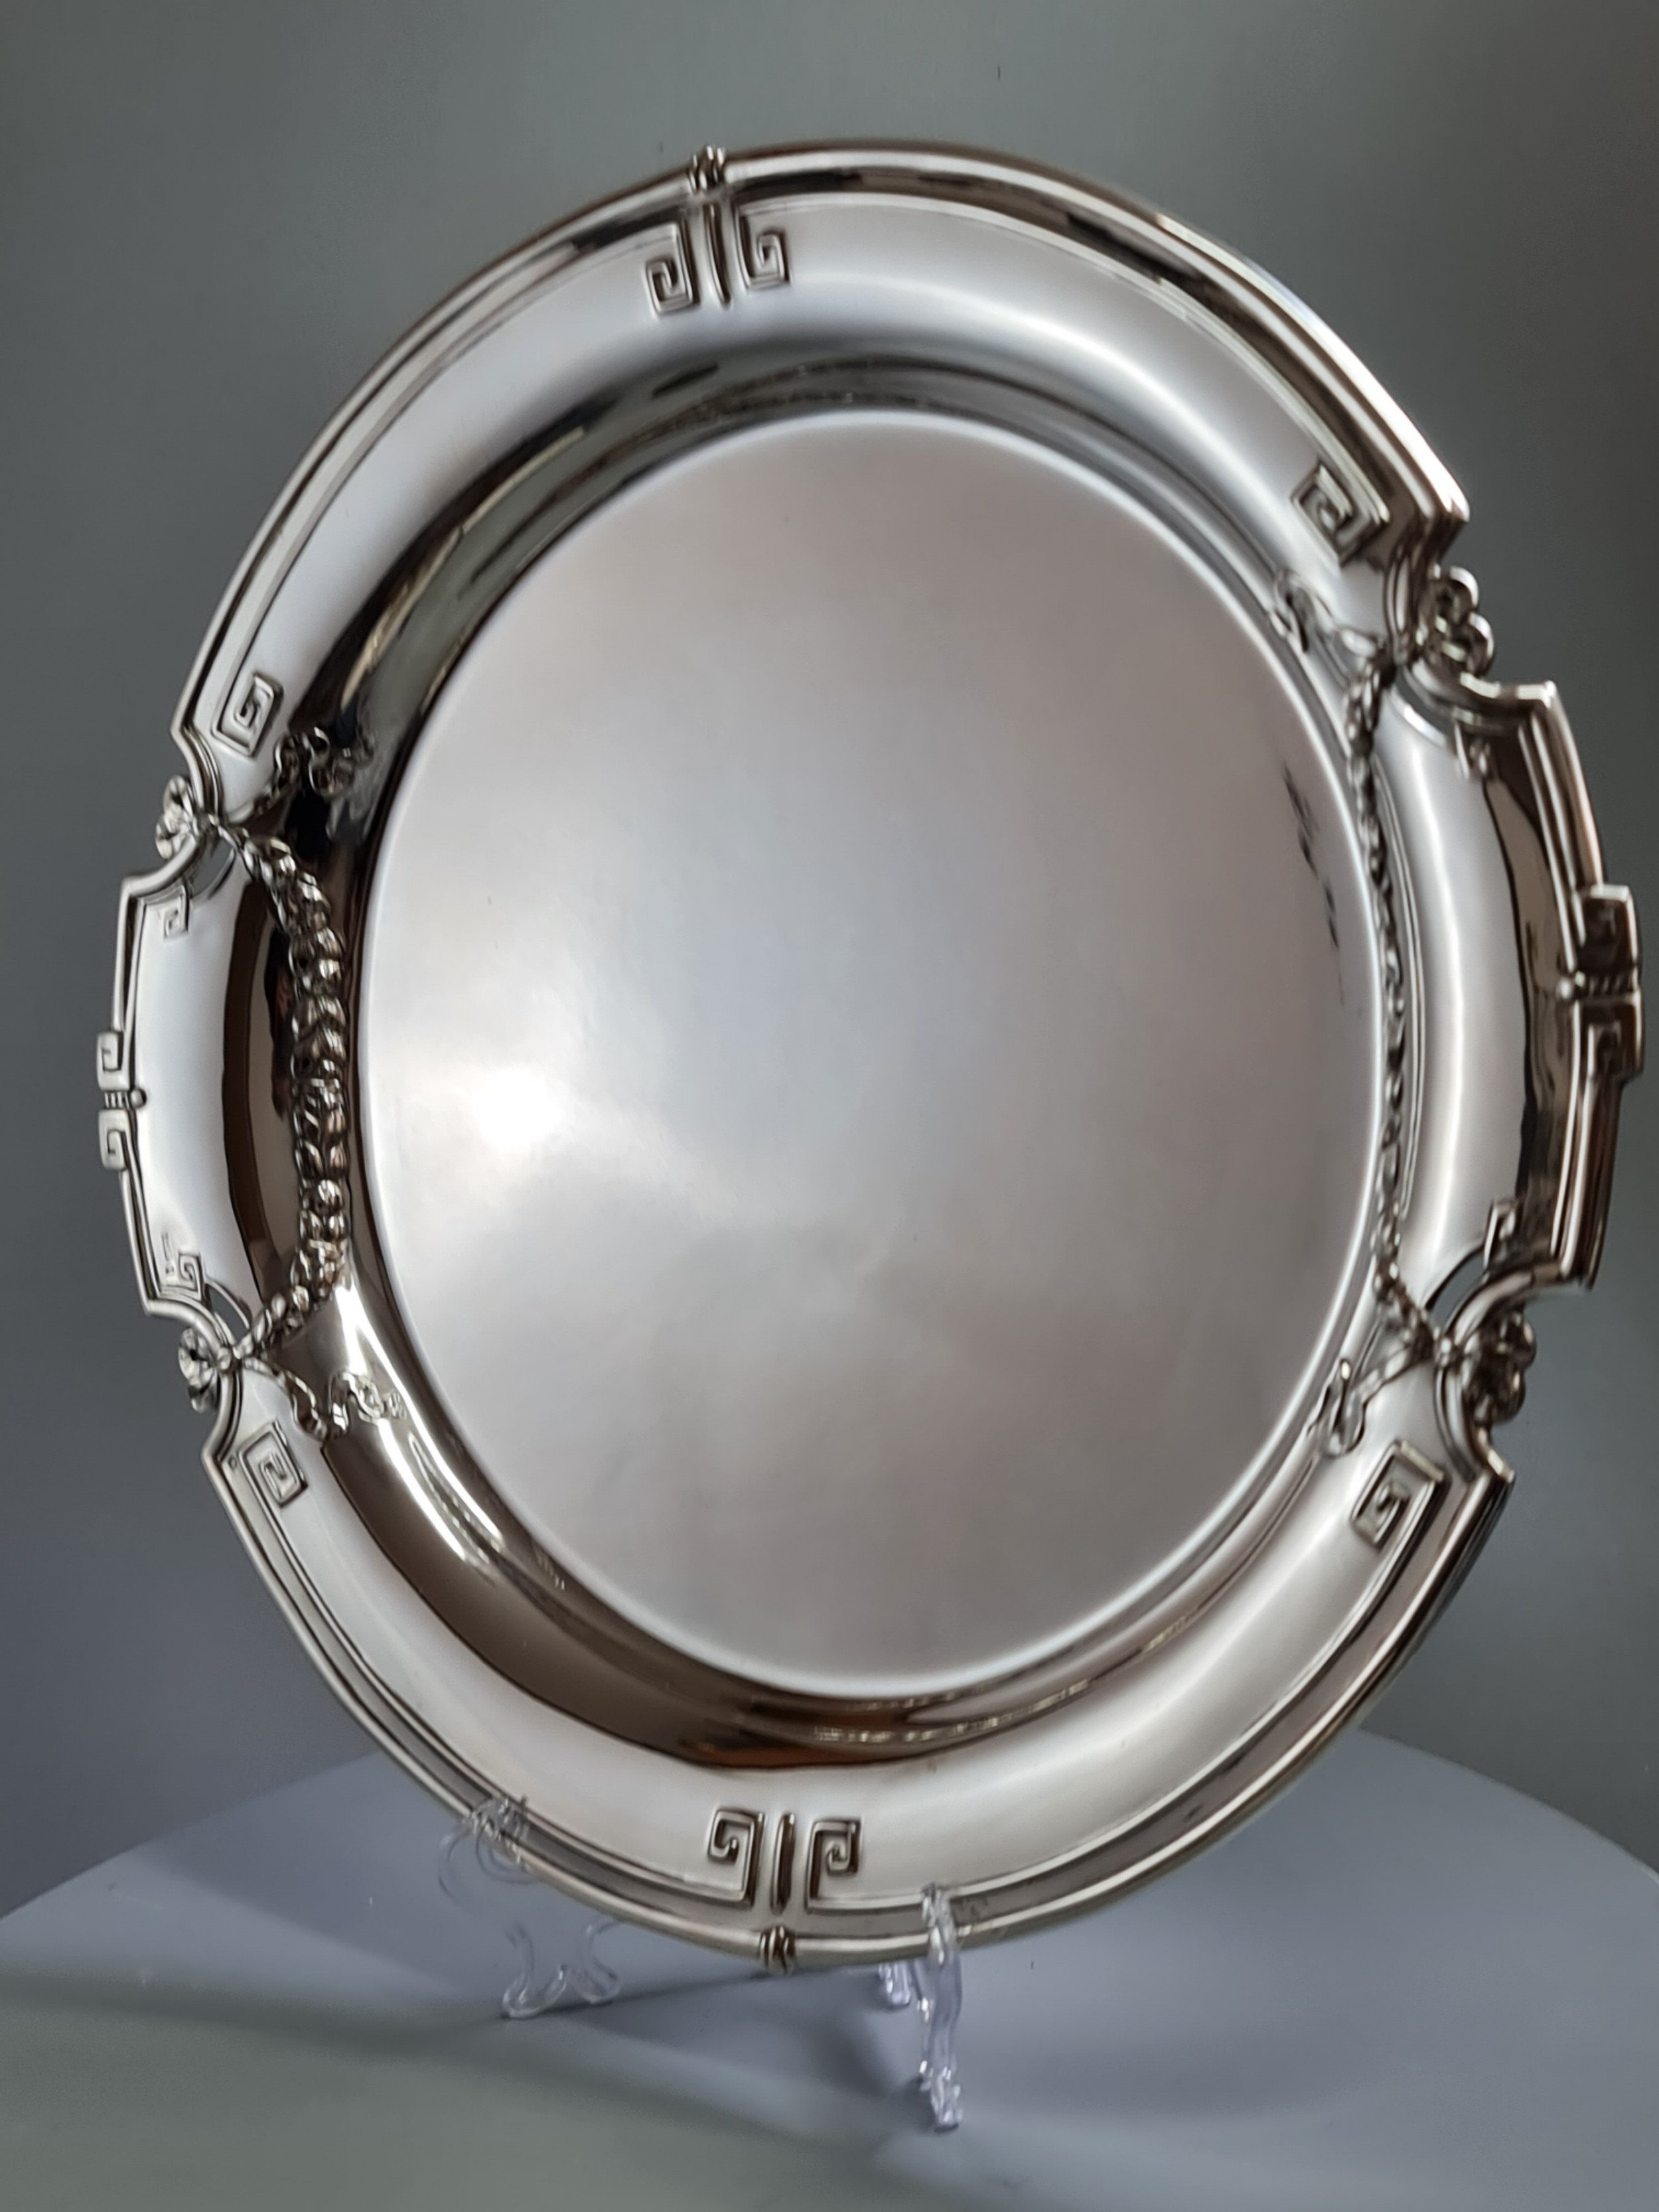 exceptional quality large 37cm secessionist silver tray signed 'singer' c1900